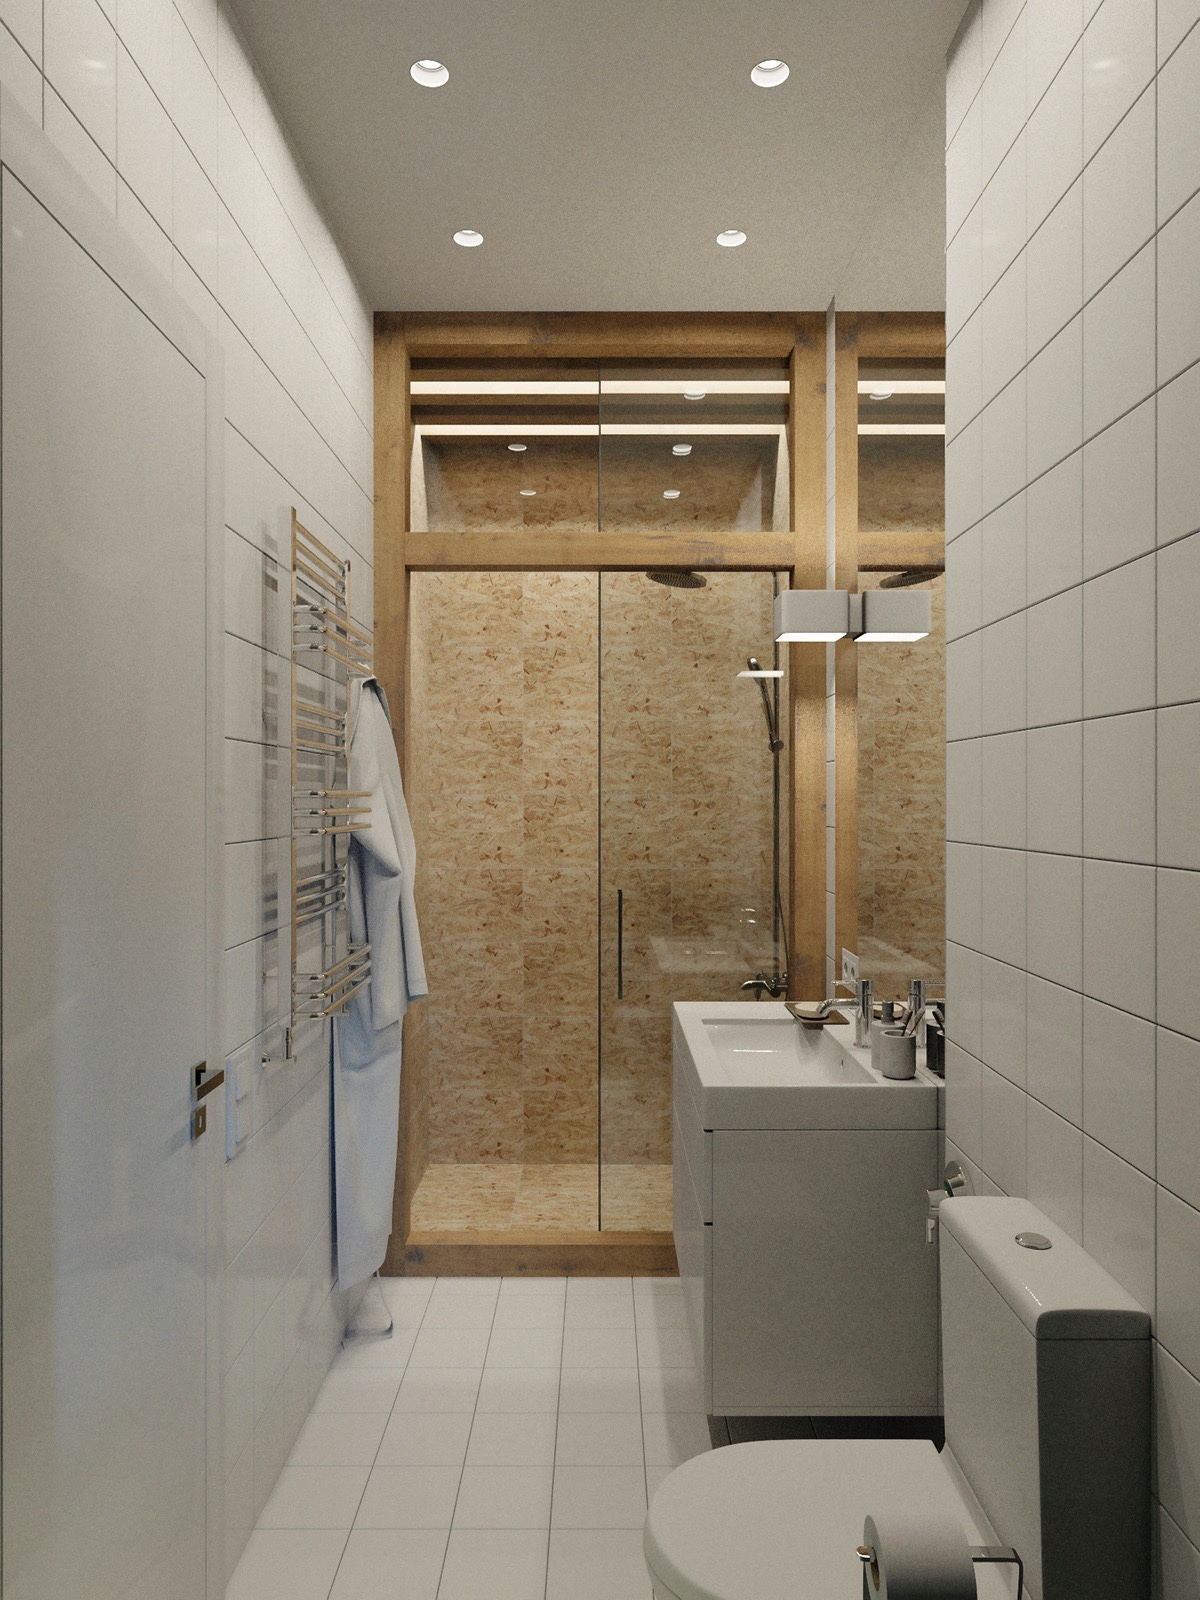 Through a corridor serving as a walk-in wardrobe, the bathroom beckons with similar features. A cork-walled shower, white tiling and high wooden frames give the illusion of space through using height and muted materials. Chrome fixtures finish off the space.